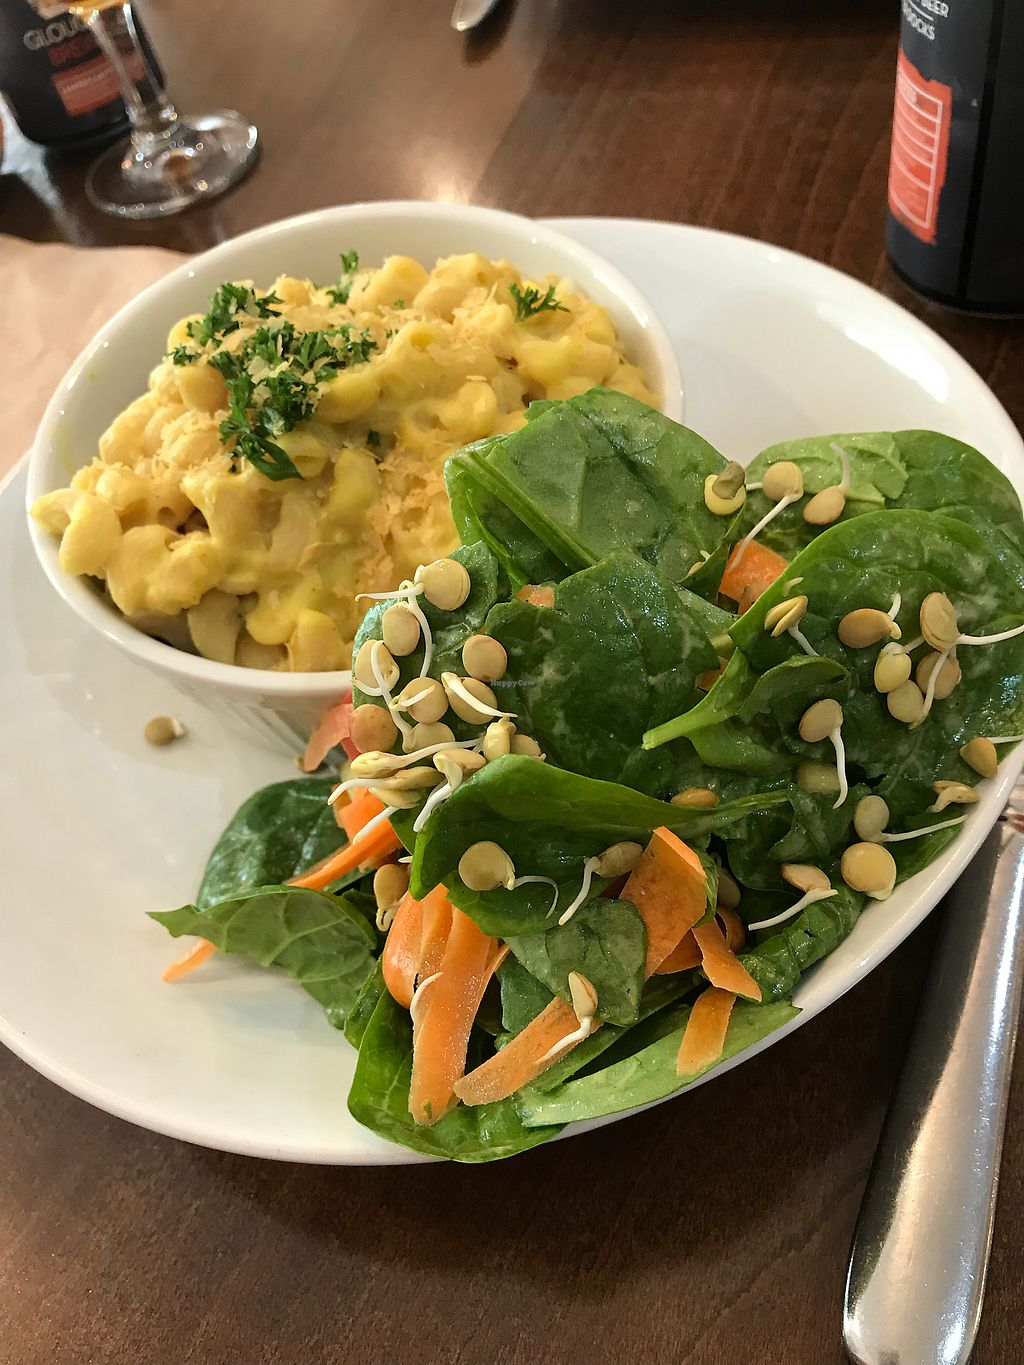 """Photo of Vinnie's Eatery  by <a href=""""/members/profile/RachelM"""">RachelM</a> <br/>Mac and cheese <br/> October 21, 2017  - <a href='/contact/abuse/image/92537/317265'>Report</a>"""